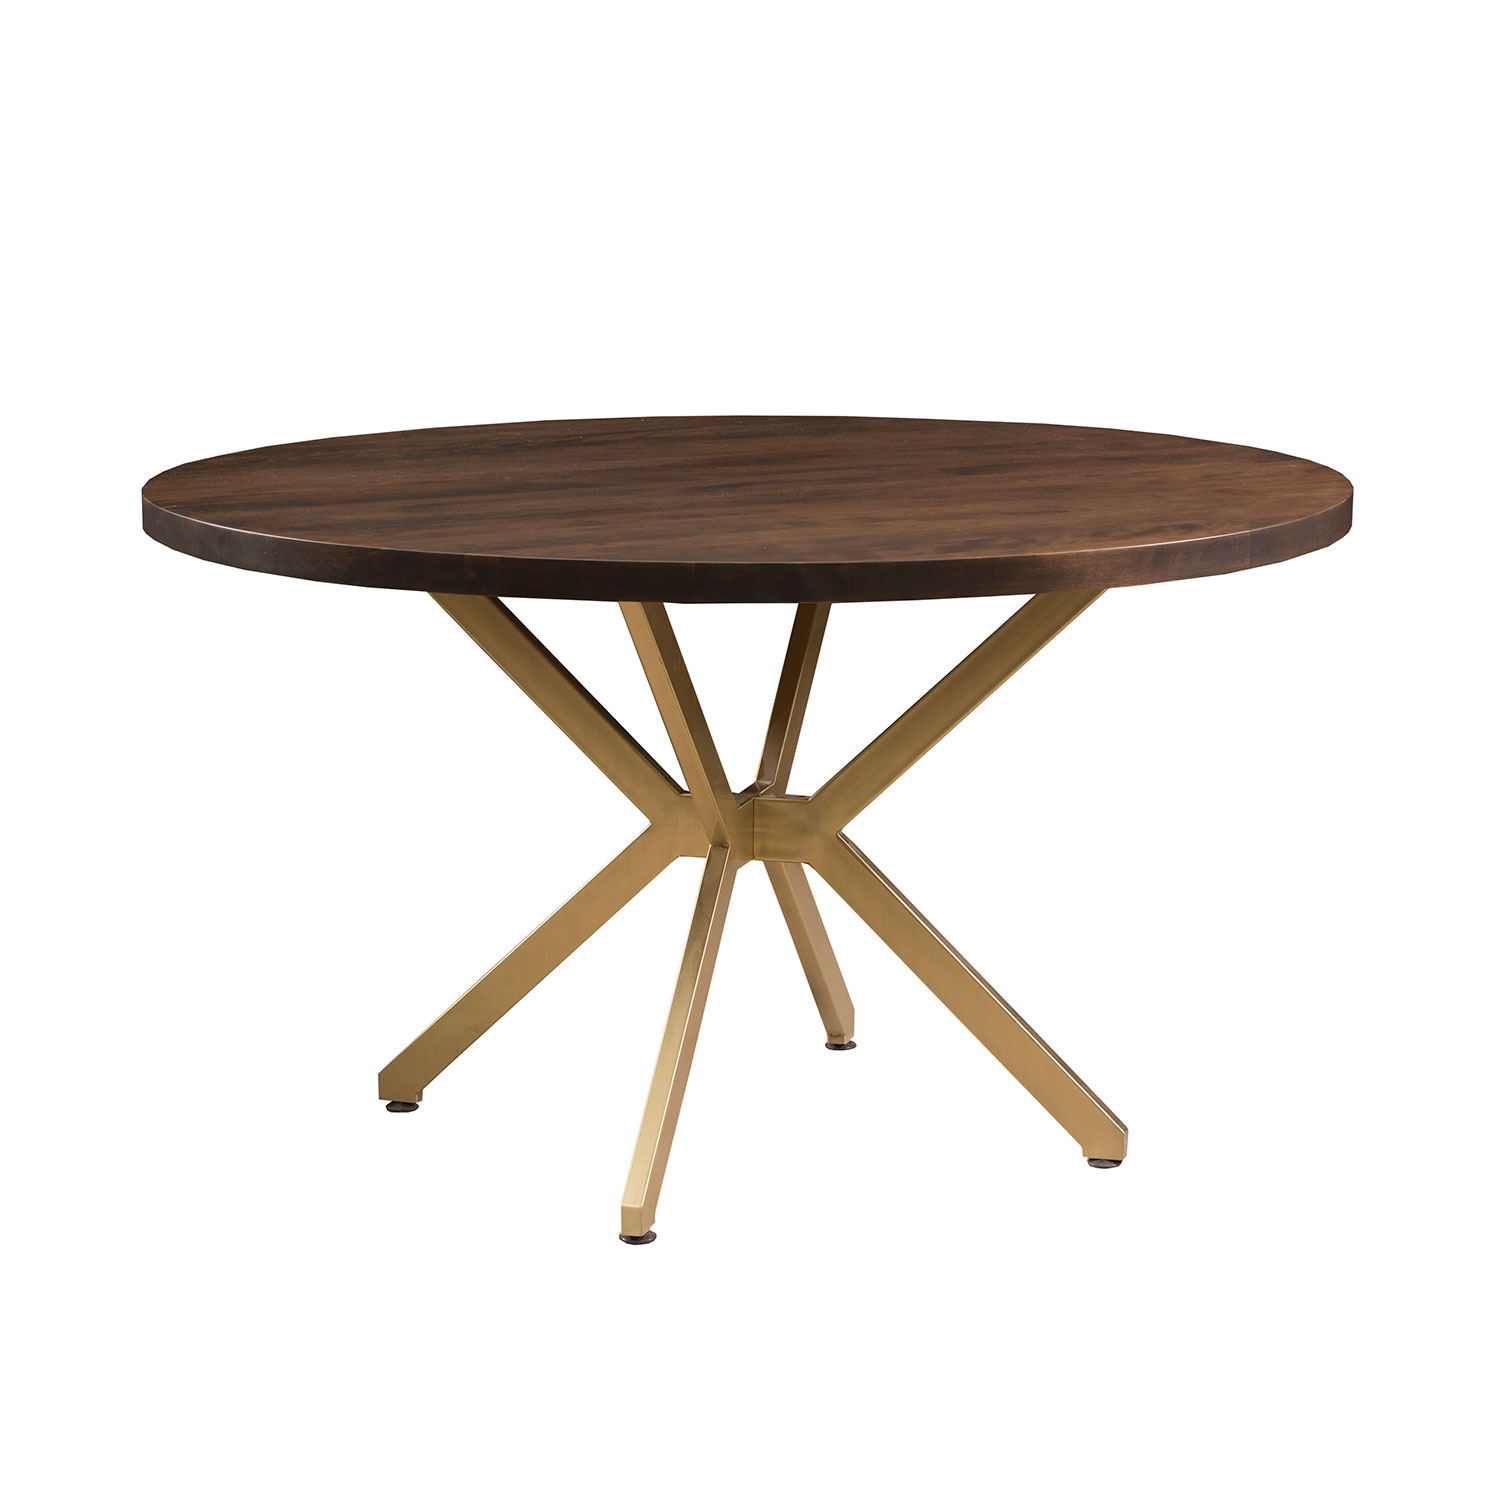 Neptune Coffee Table With Storage Ottomans: Neptune Round Dining Table